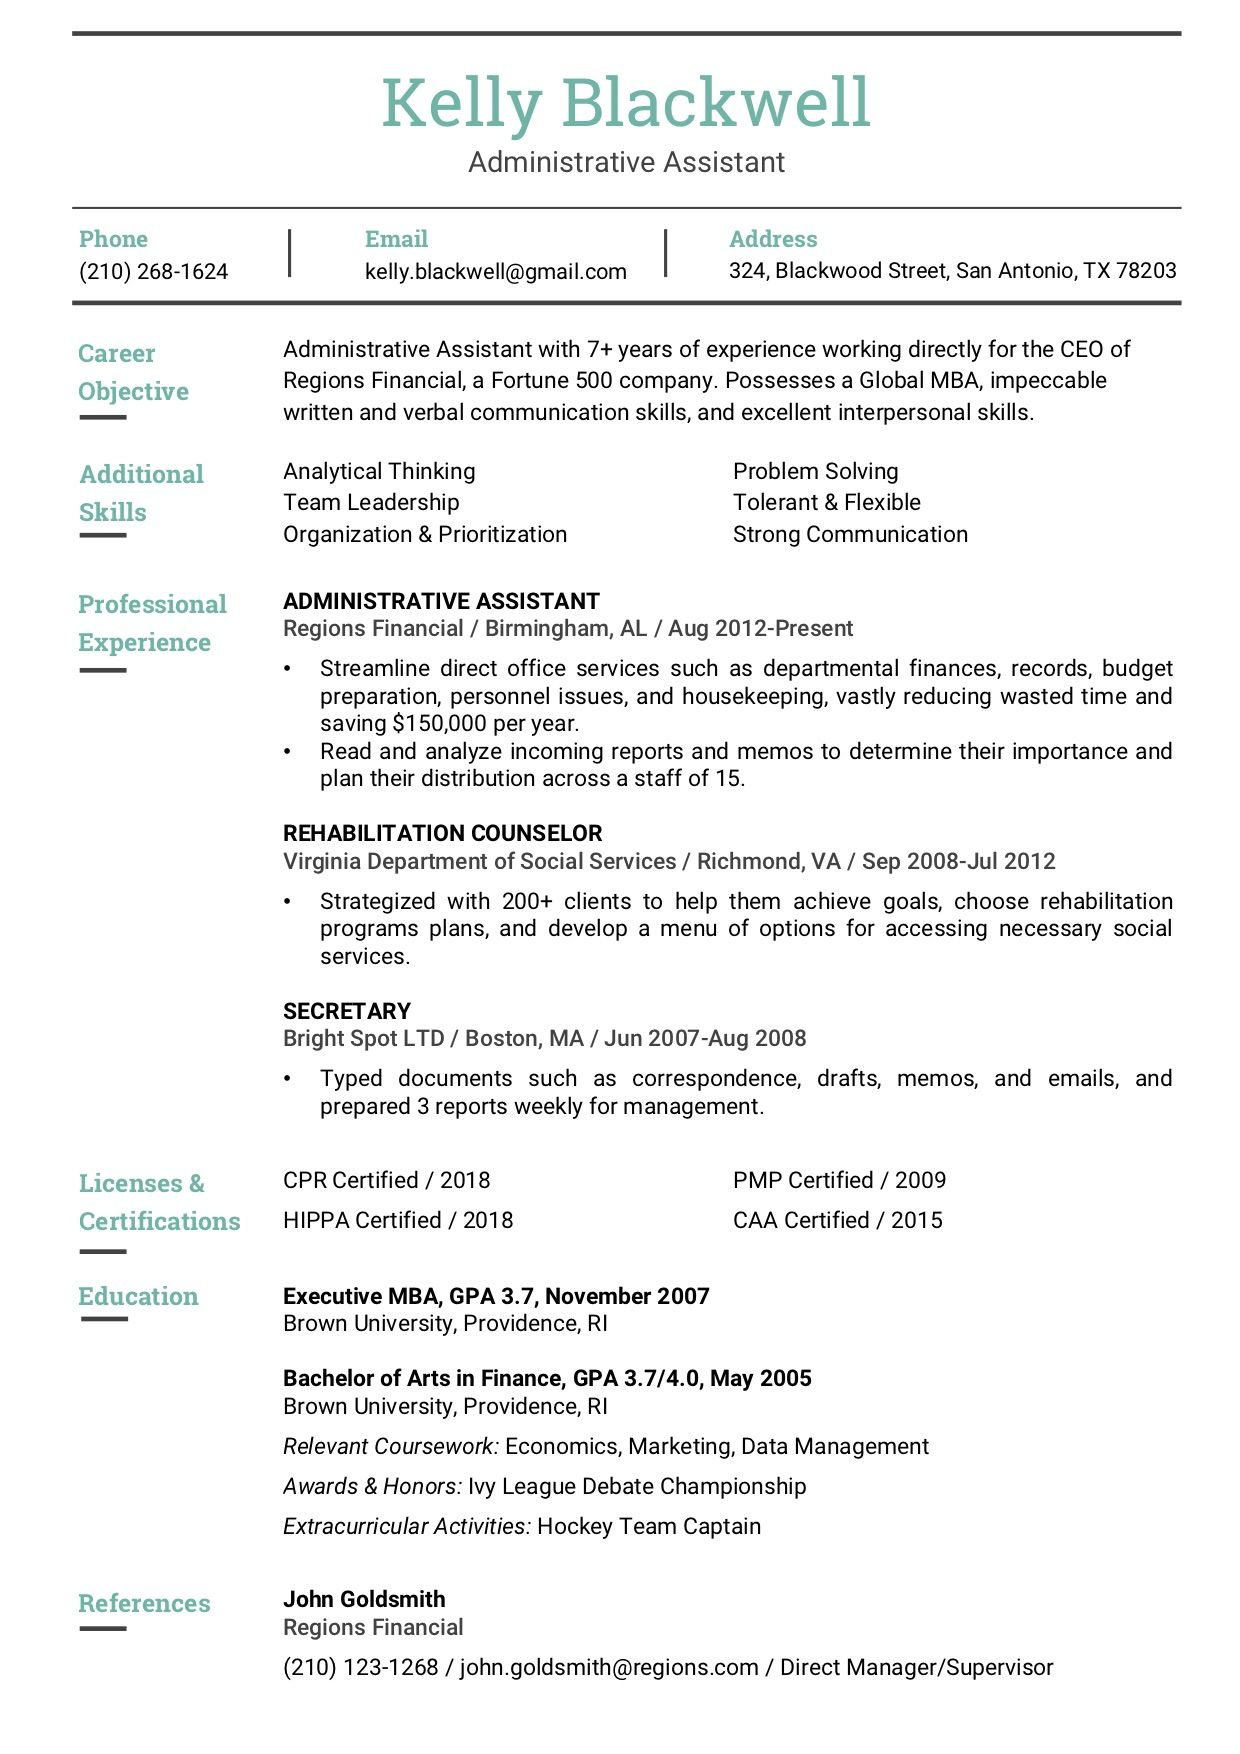 Resume Template 7d Rc Resume Template Professional Creative Resume Resume Templates